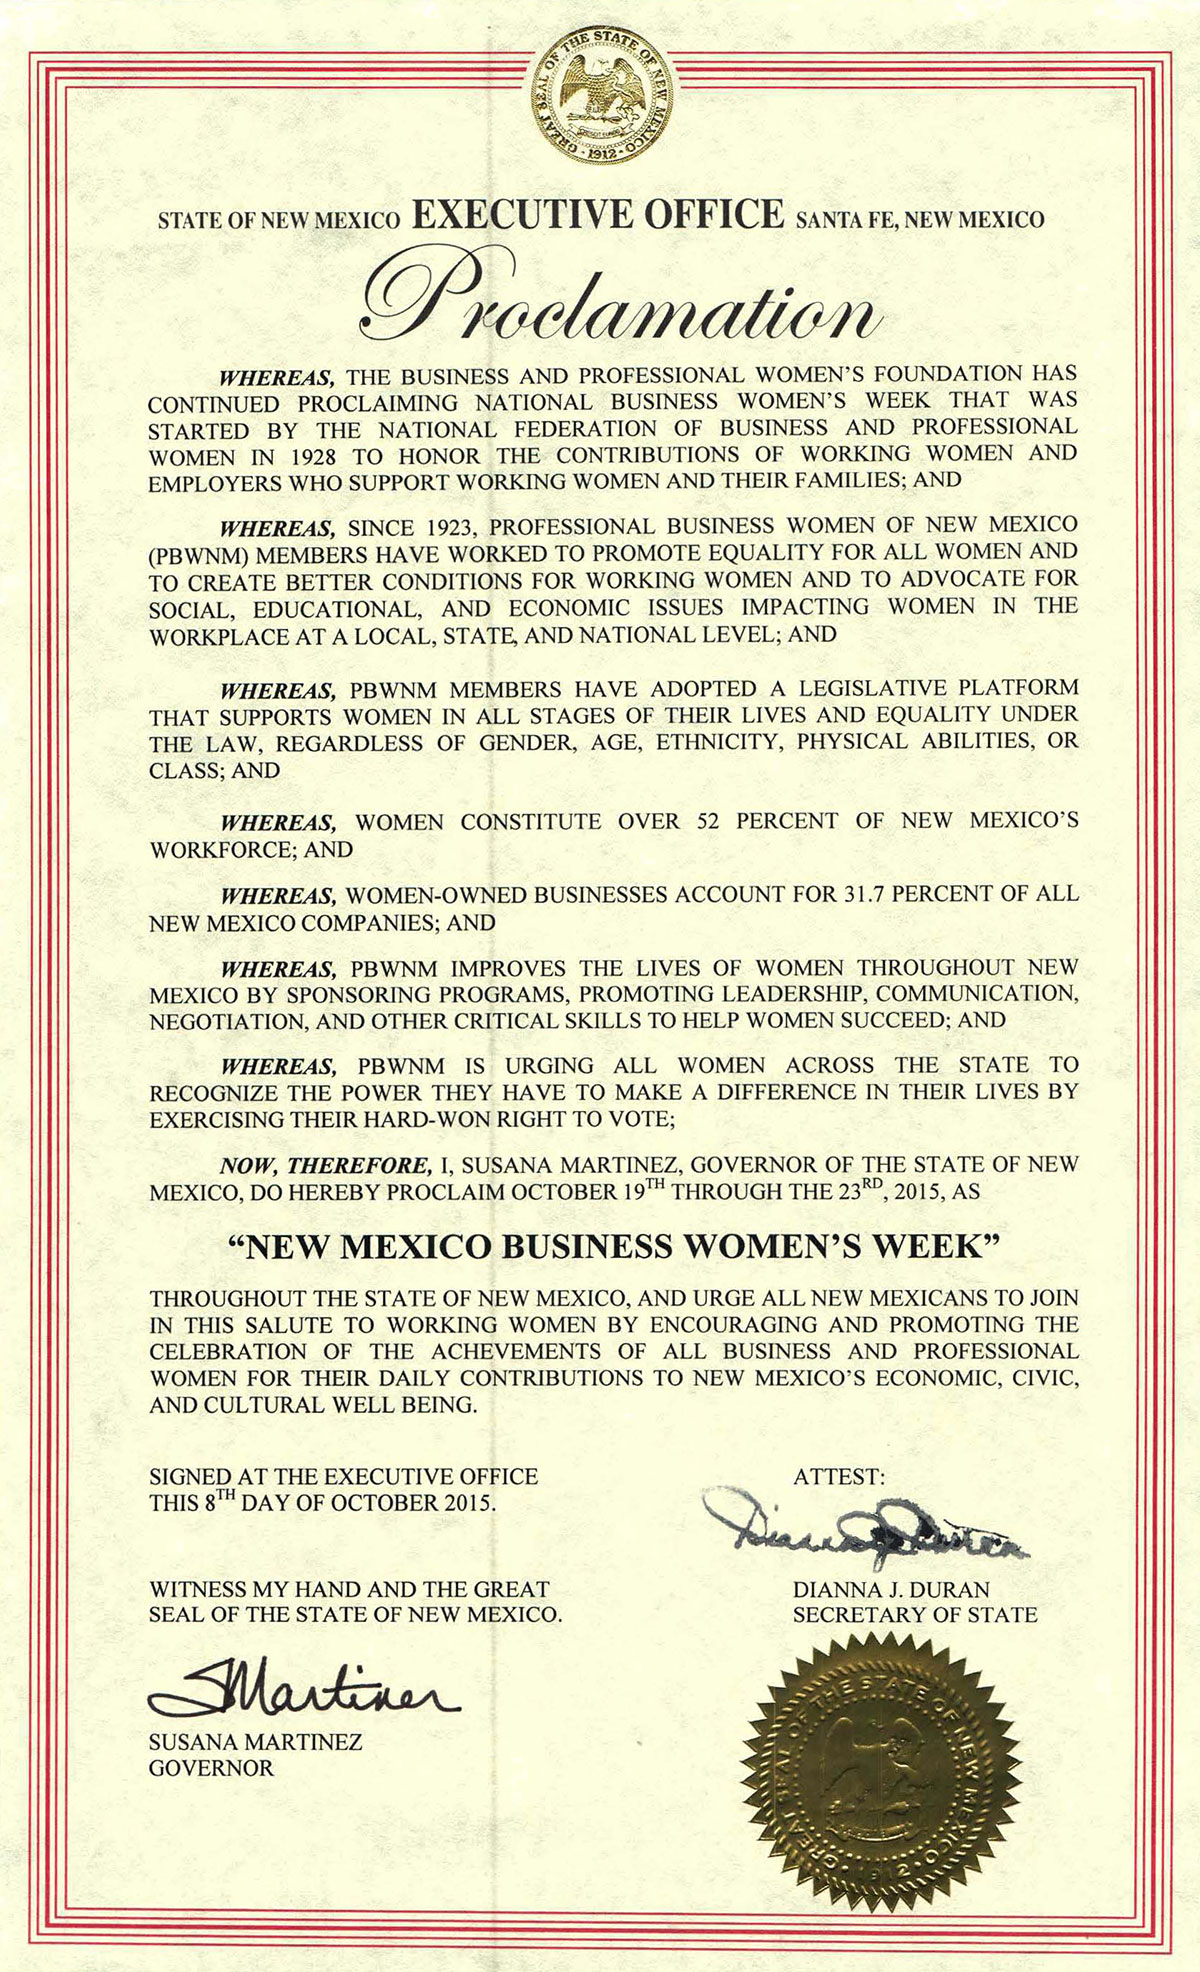 proclamation_2015_new_mexico_business_womens_week